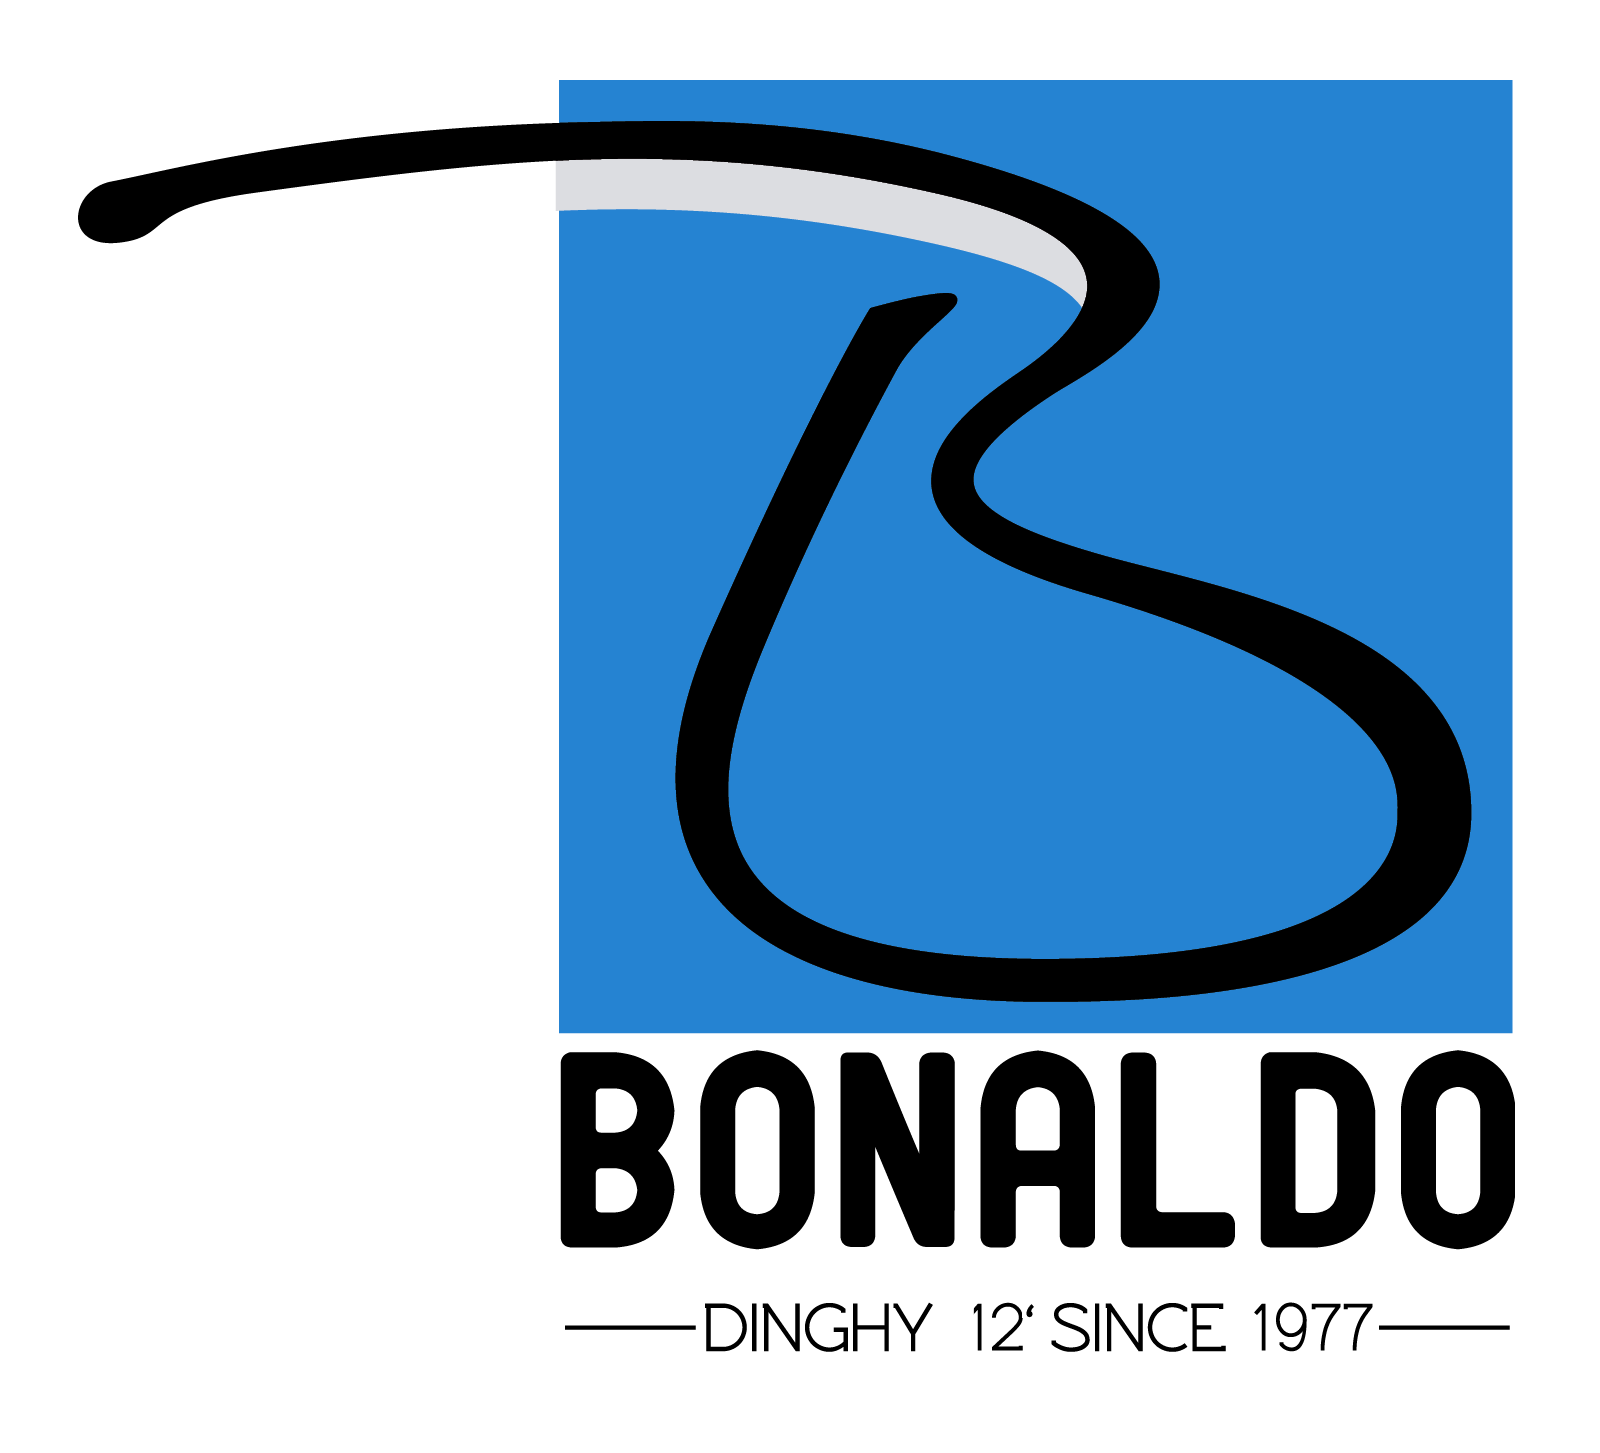 BONALDO DINGHY 12'  – THE FIRST SINCE 1977